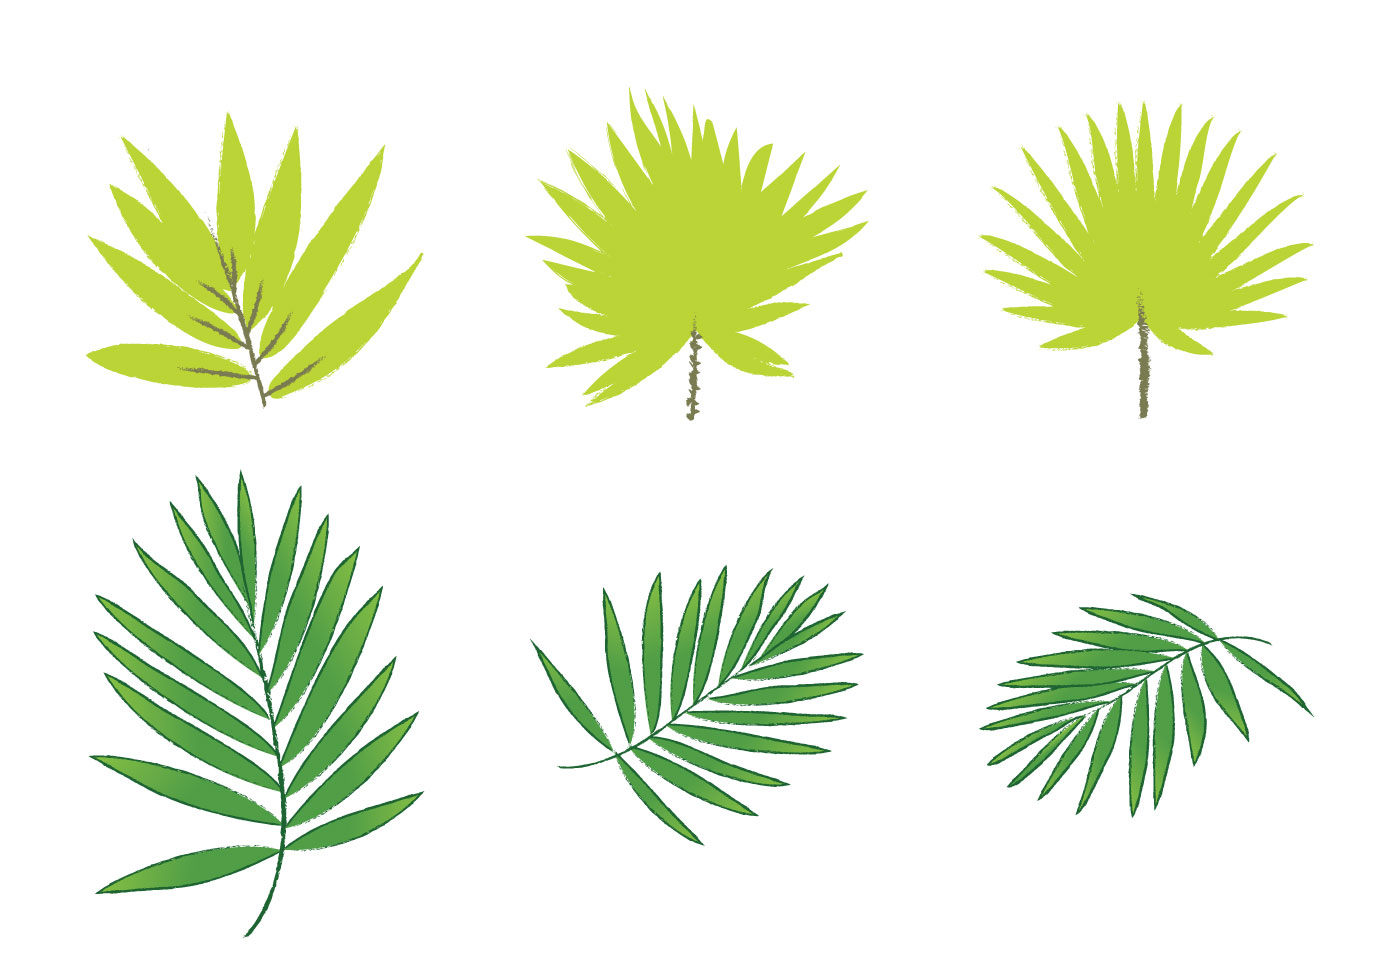 Free Palm Leaf Vectors - Download Free Vector Art, Stock ... - photo#37